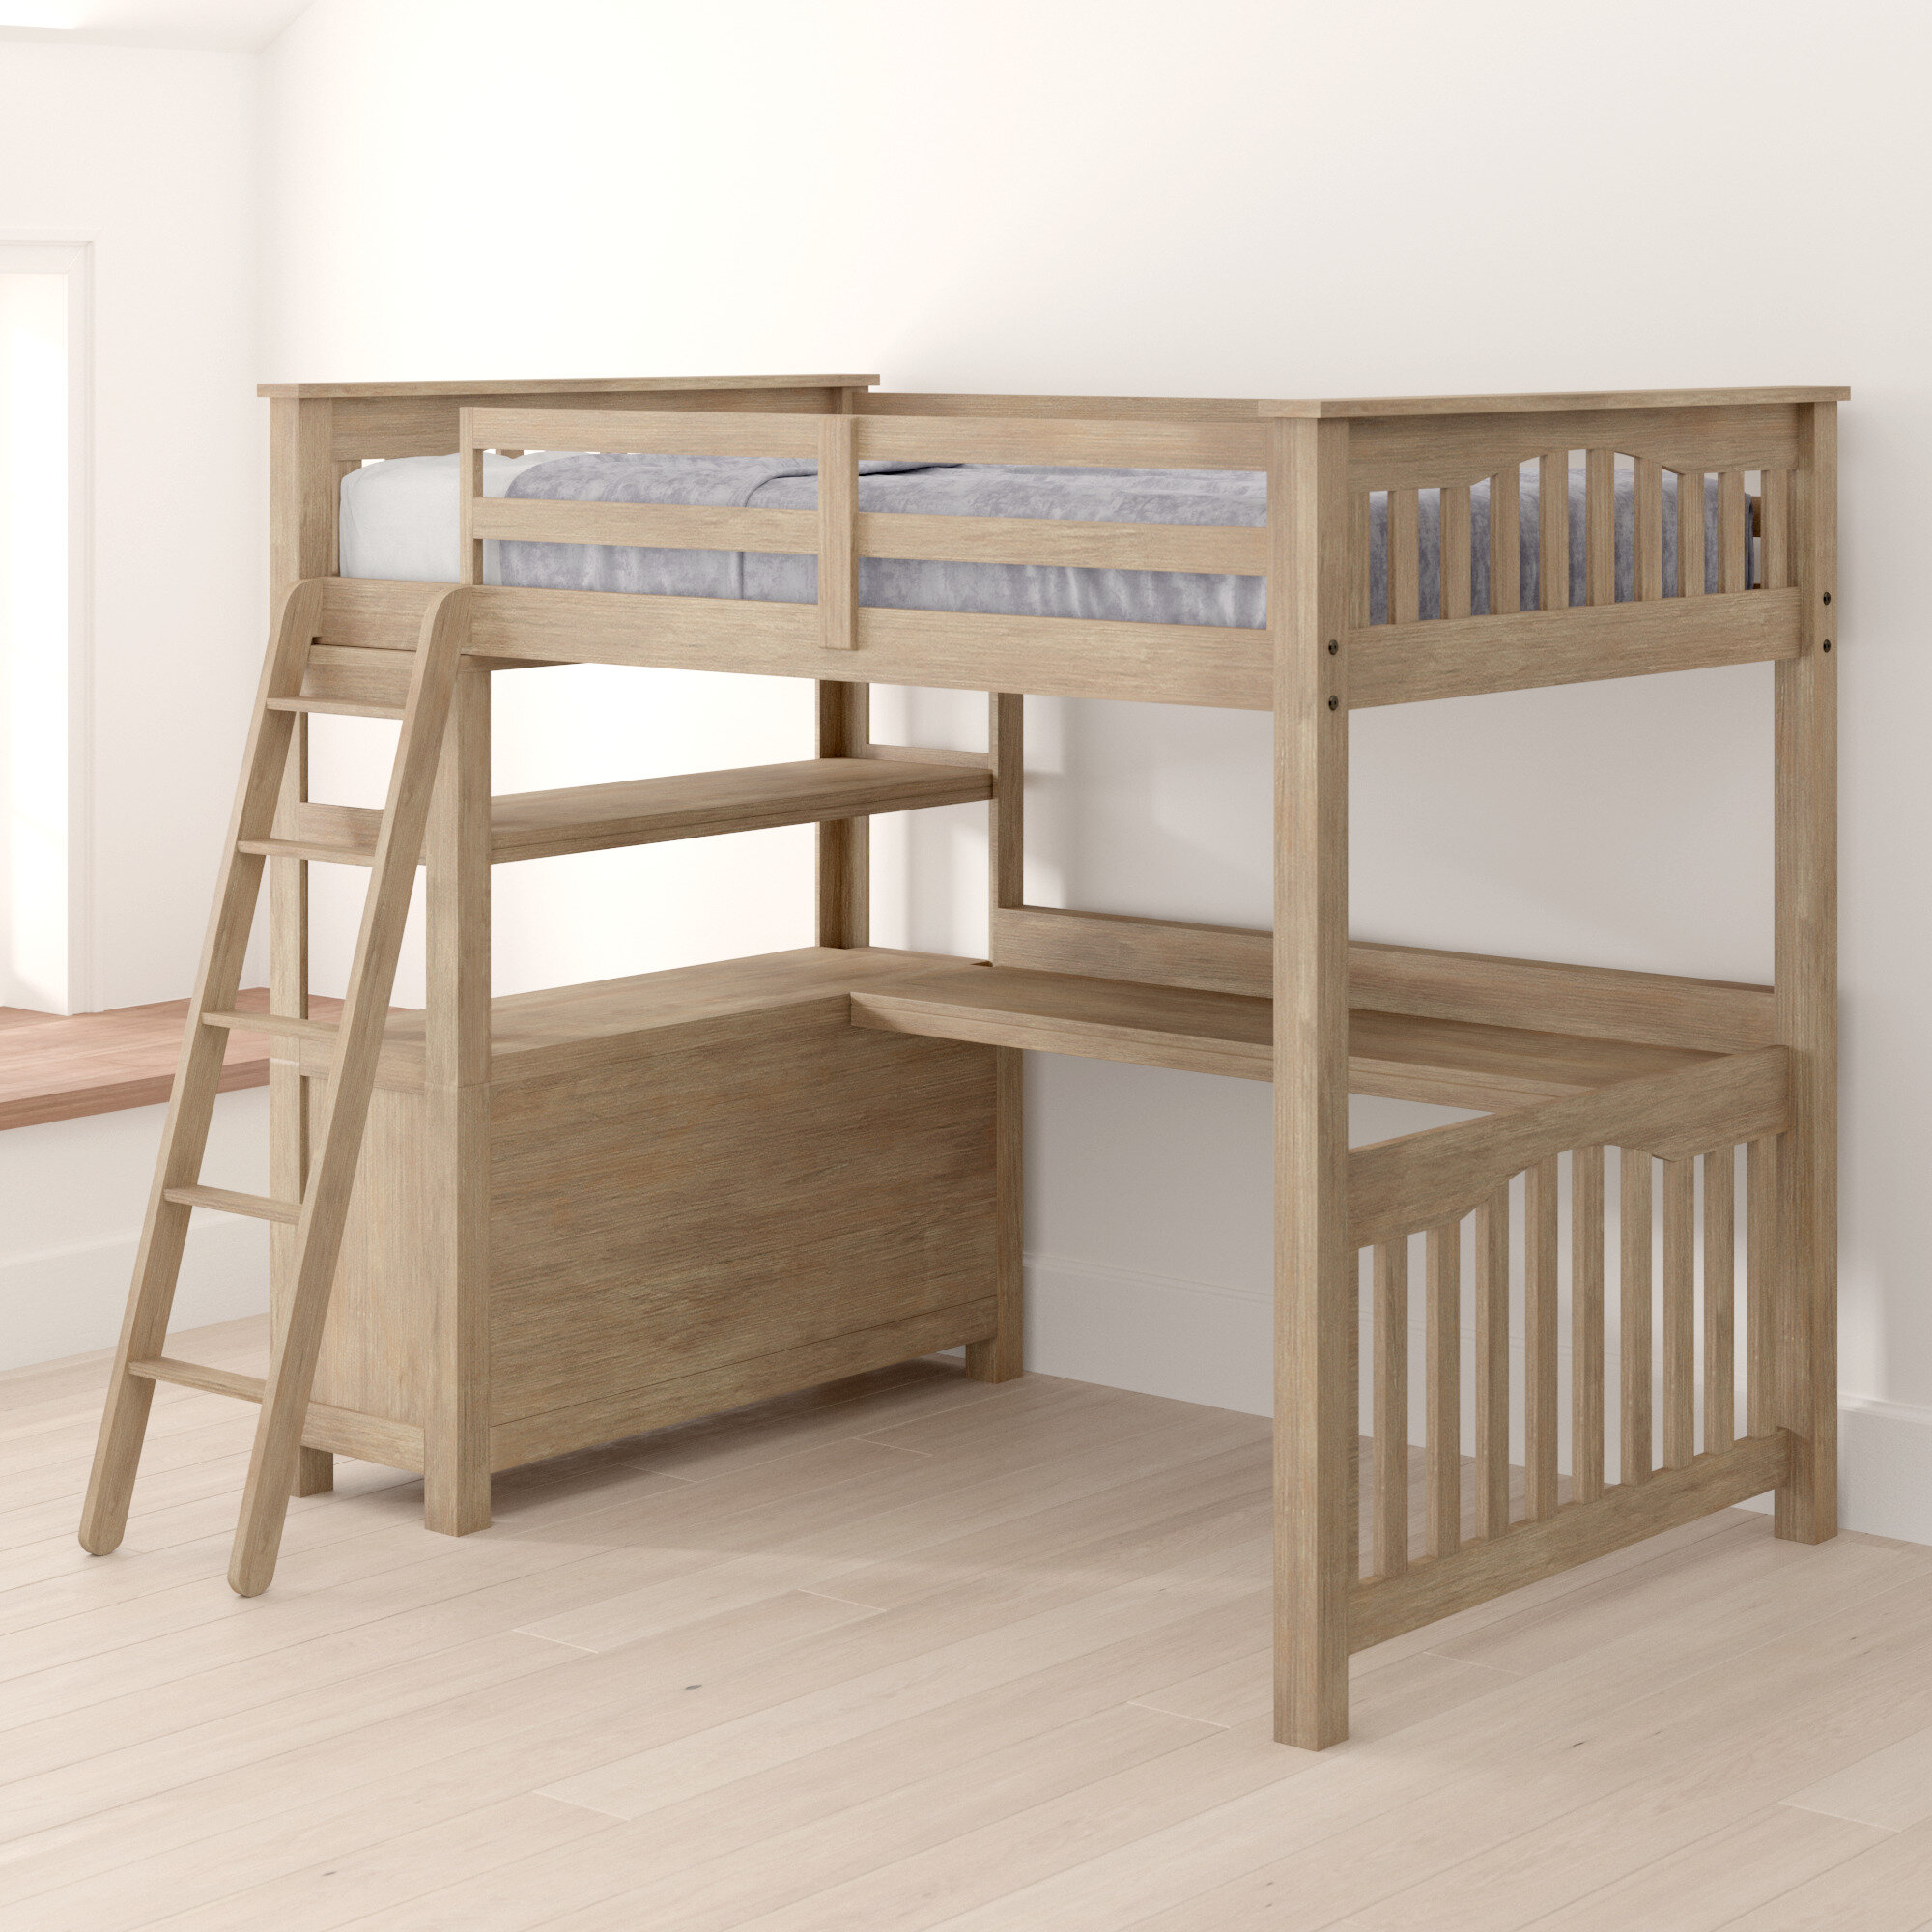 Picture of: Greyleigh Bedlington Loft Bed With Desk And Drawers Reviews Wayfair Ca